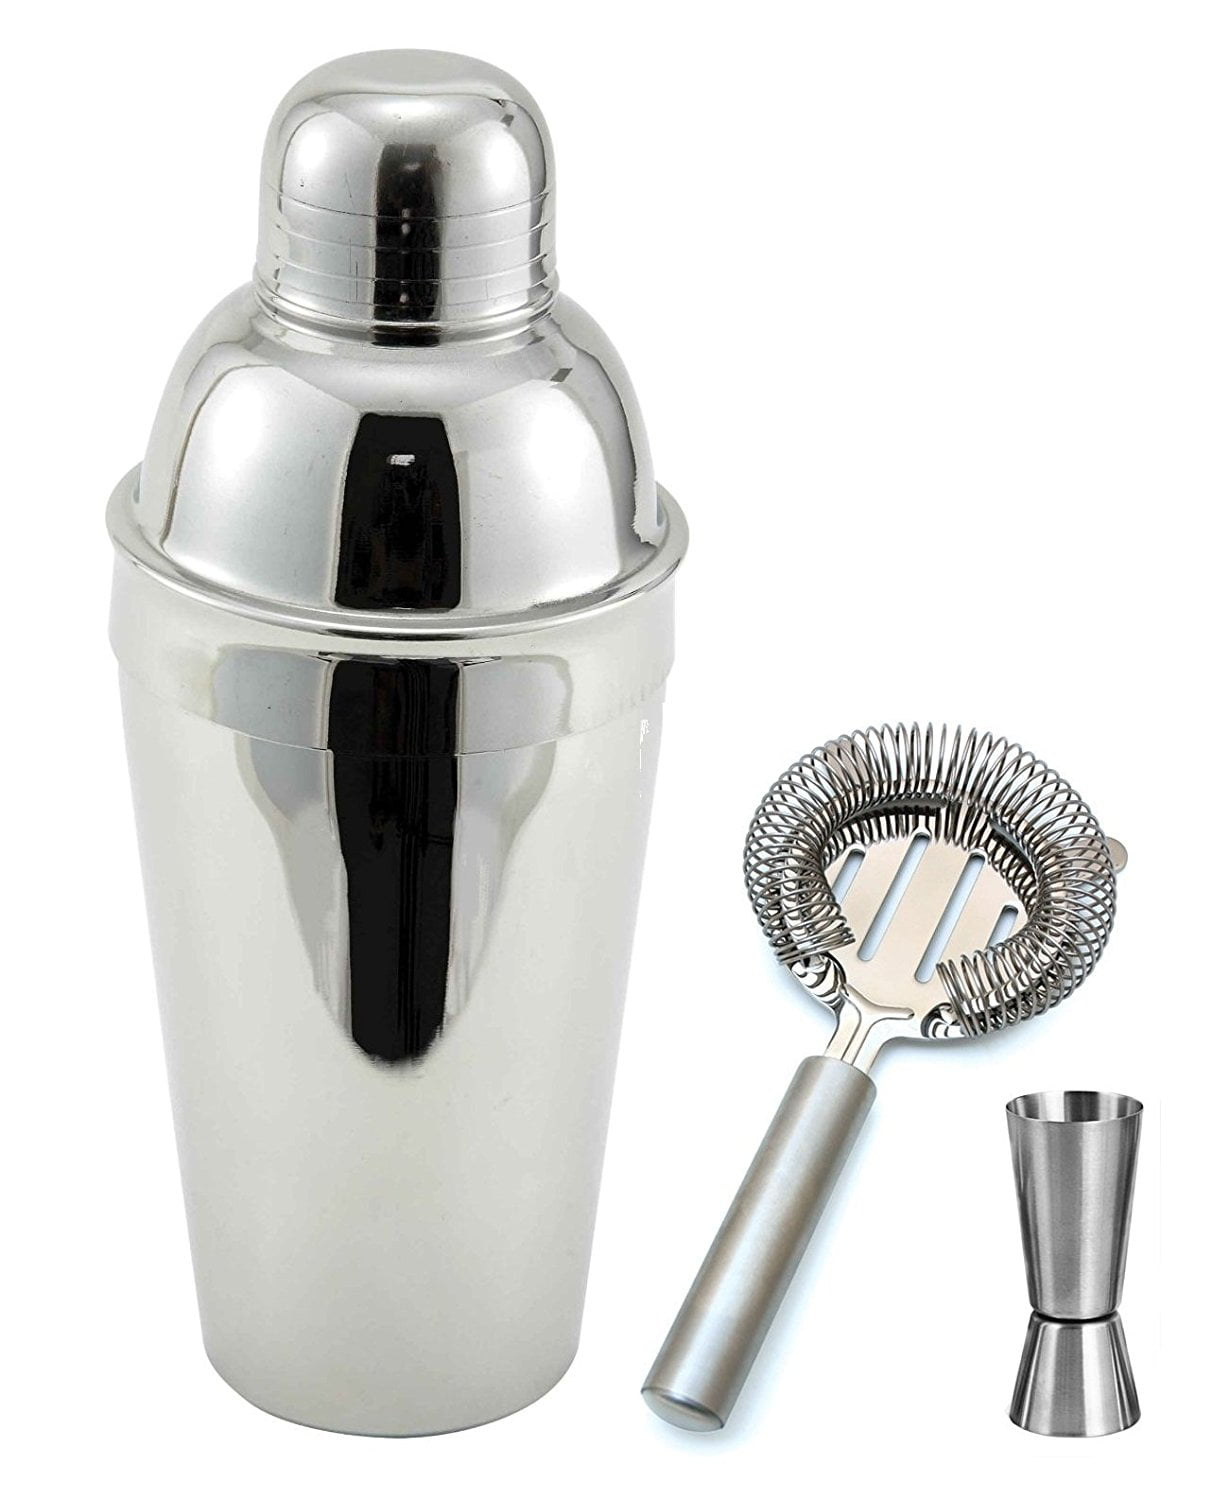 3 Piece Bar Set Stainless Steel Martini Cocktail Shaker, Jigger, and Strainer Gift Set by Winco